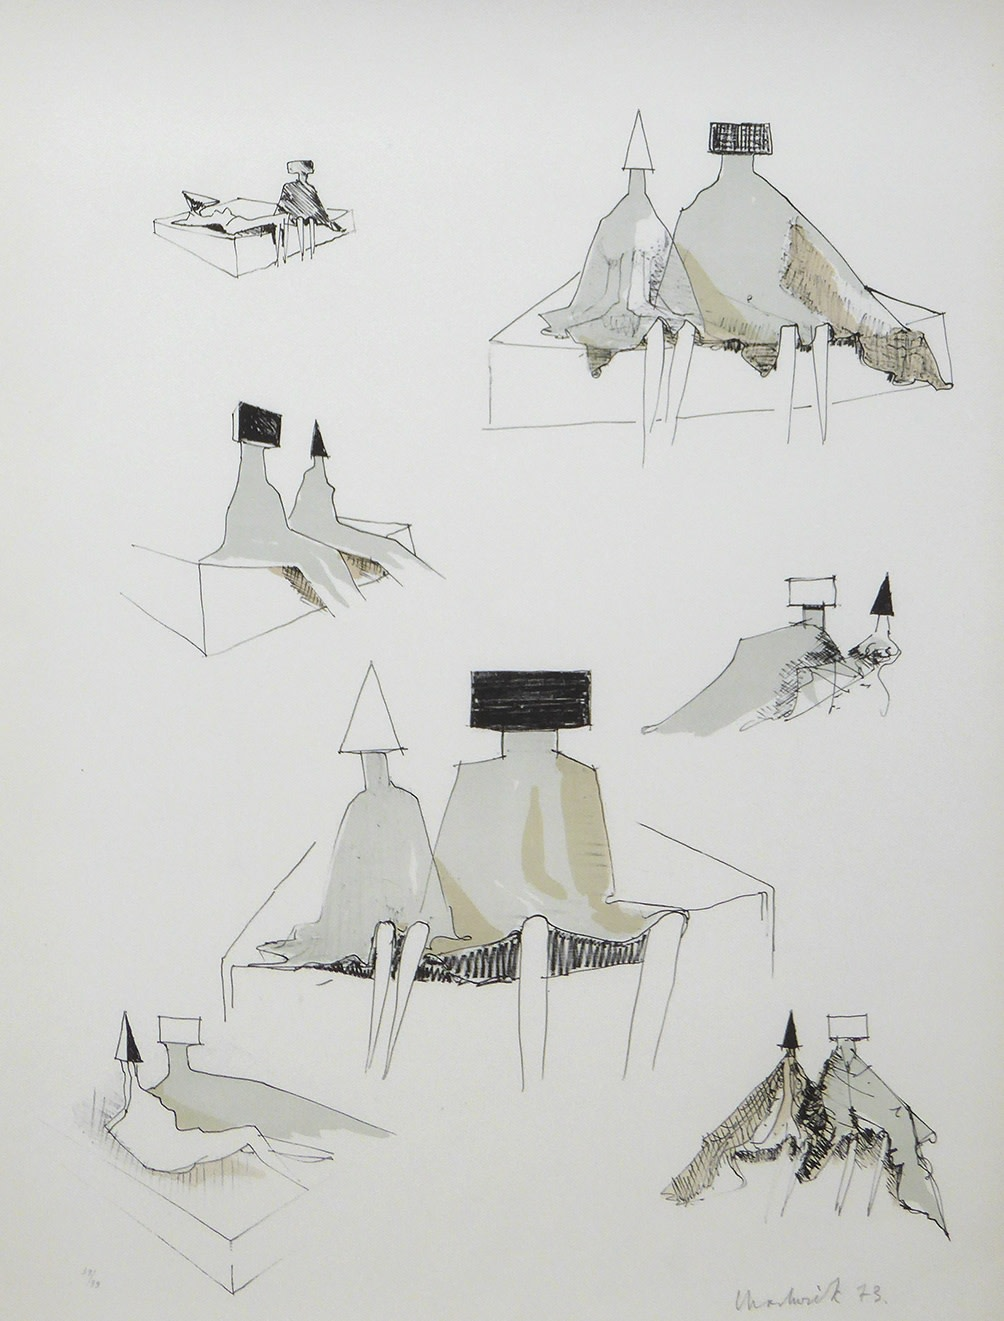 <span class=&#34;link fancybox-details-link&#34;><a href=&#34;/artists/55-lynn-chadwick-cbe/works/2517-lynn-chadwick-cbe-seated-figures-1971-published-1973/&#34;>View Detail Page</a></span><div class=&#34;artist&#34;><strong>Lynn Chadwick CBE</strong></div> 1914–2003 <div class=&#34;title&#34;><em>Seated Figures</em>, 1971, published 1973</div> <div class=&#34;signed_and_dated&#34;>signed, dated and numbered in pencil</div> <div class=&#34;medium&#34;>lithograph on watermarked BFK Rives paper</div> <div class=&#34;dimensions&#34;>Sheet size: 70.5 x 50.2 cm<br />27 3/4 x 19 3/4 inches</div> <div class=&#34;edition_details&#34;>39/100</div>